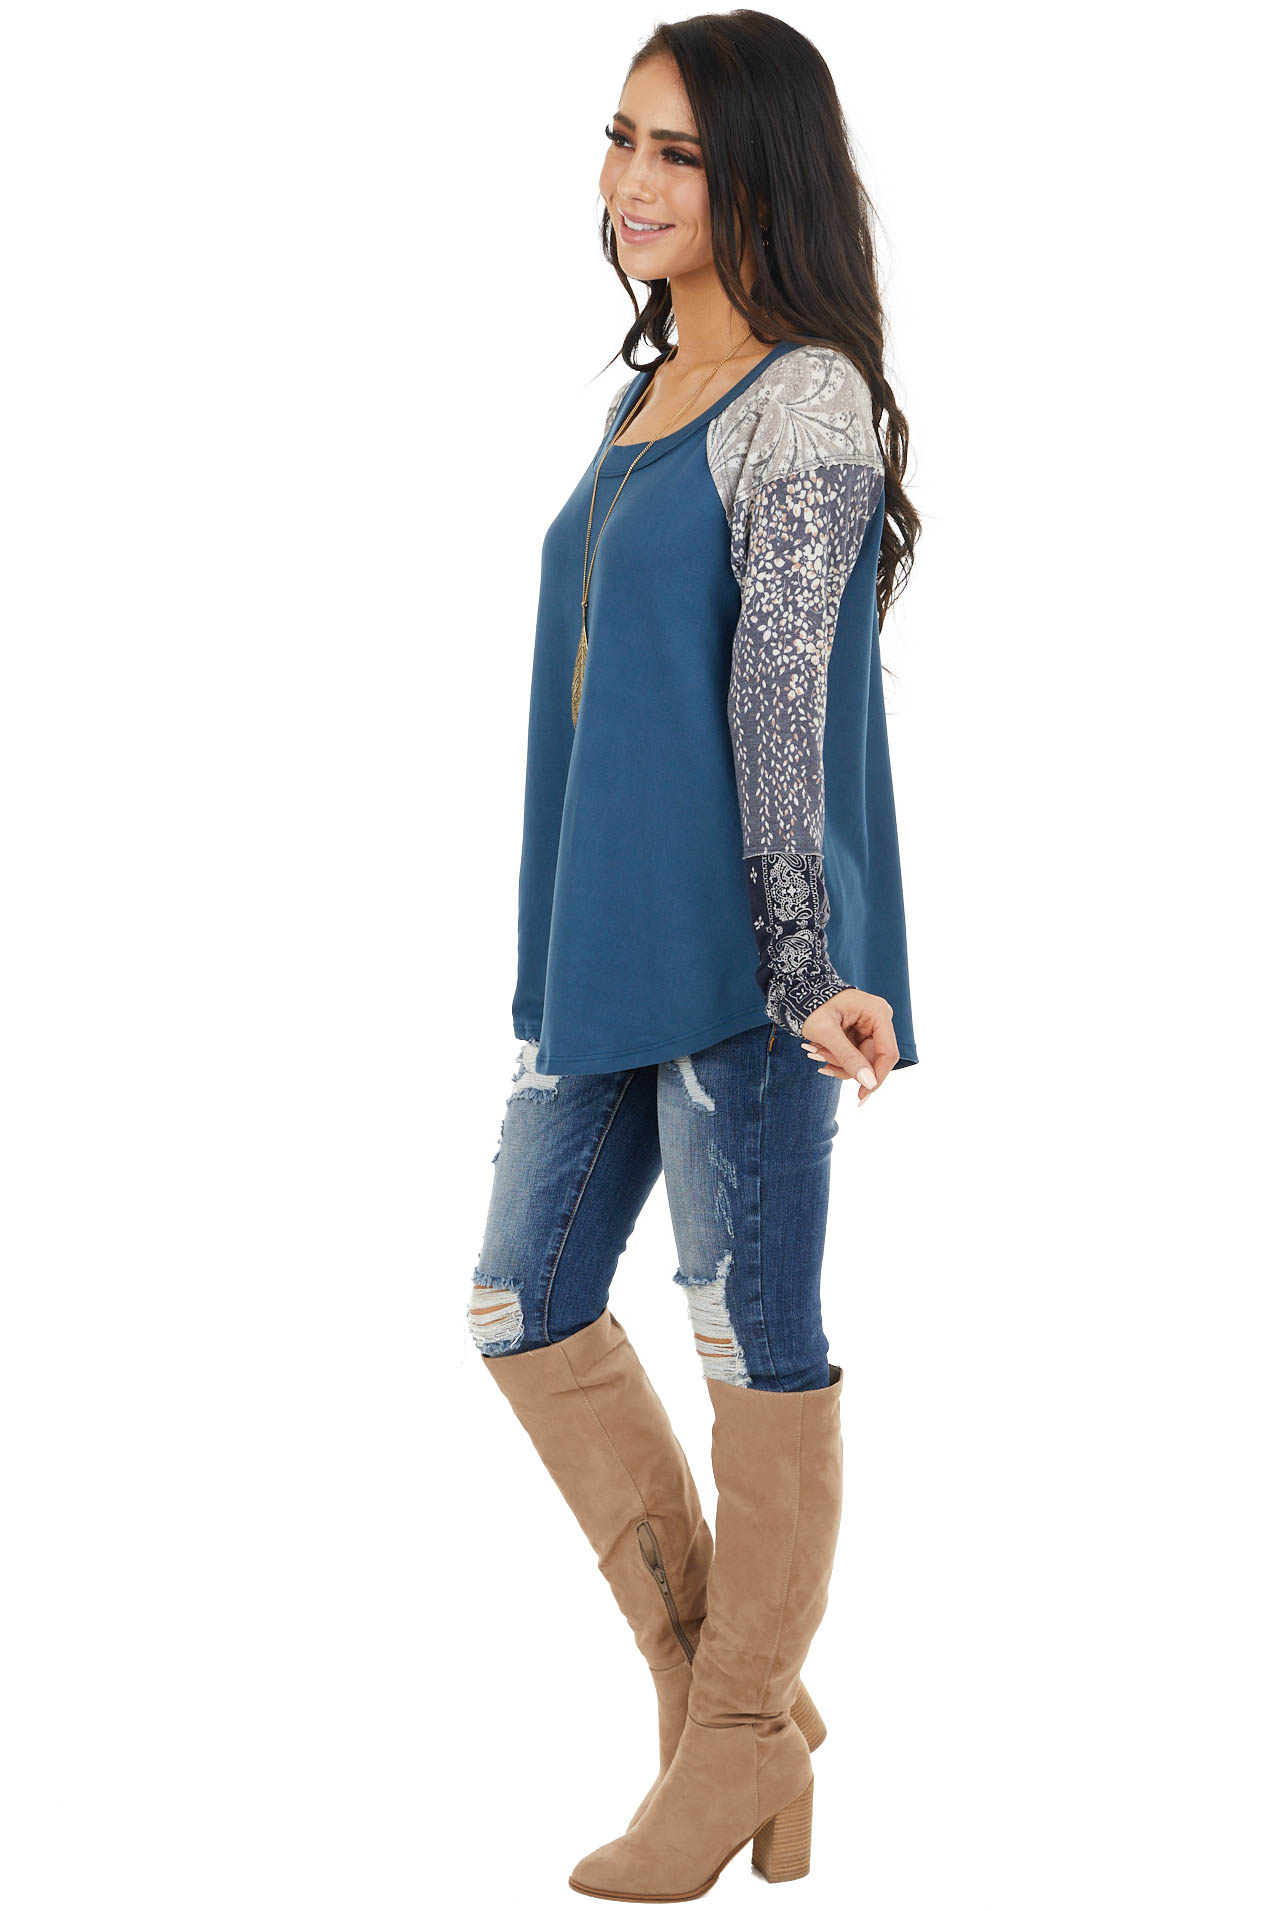 Ocean Multiprint Long Sleeve Knit Top with Raw Edge Detail